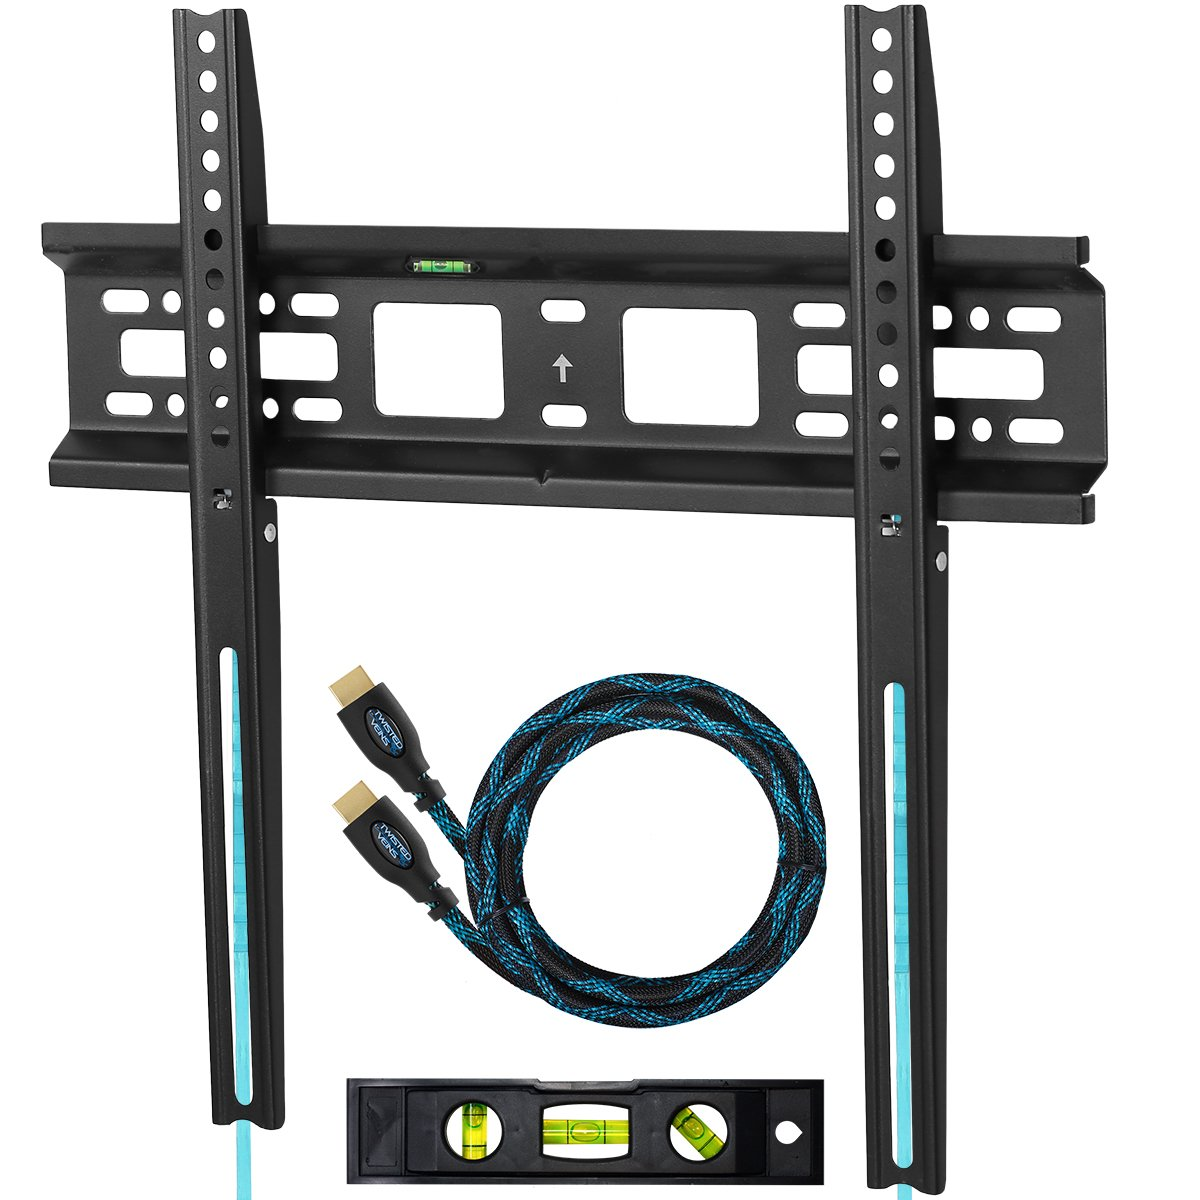 "Cheetah Mounts APFMSB TV Wall Mount Bracket for 20-55"" TVs Up To VESA 400 and 115 lbs (kg 52) including a Twisted Veins 10' (3m) HDMI Cable and a 6"